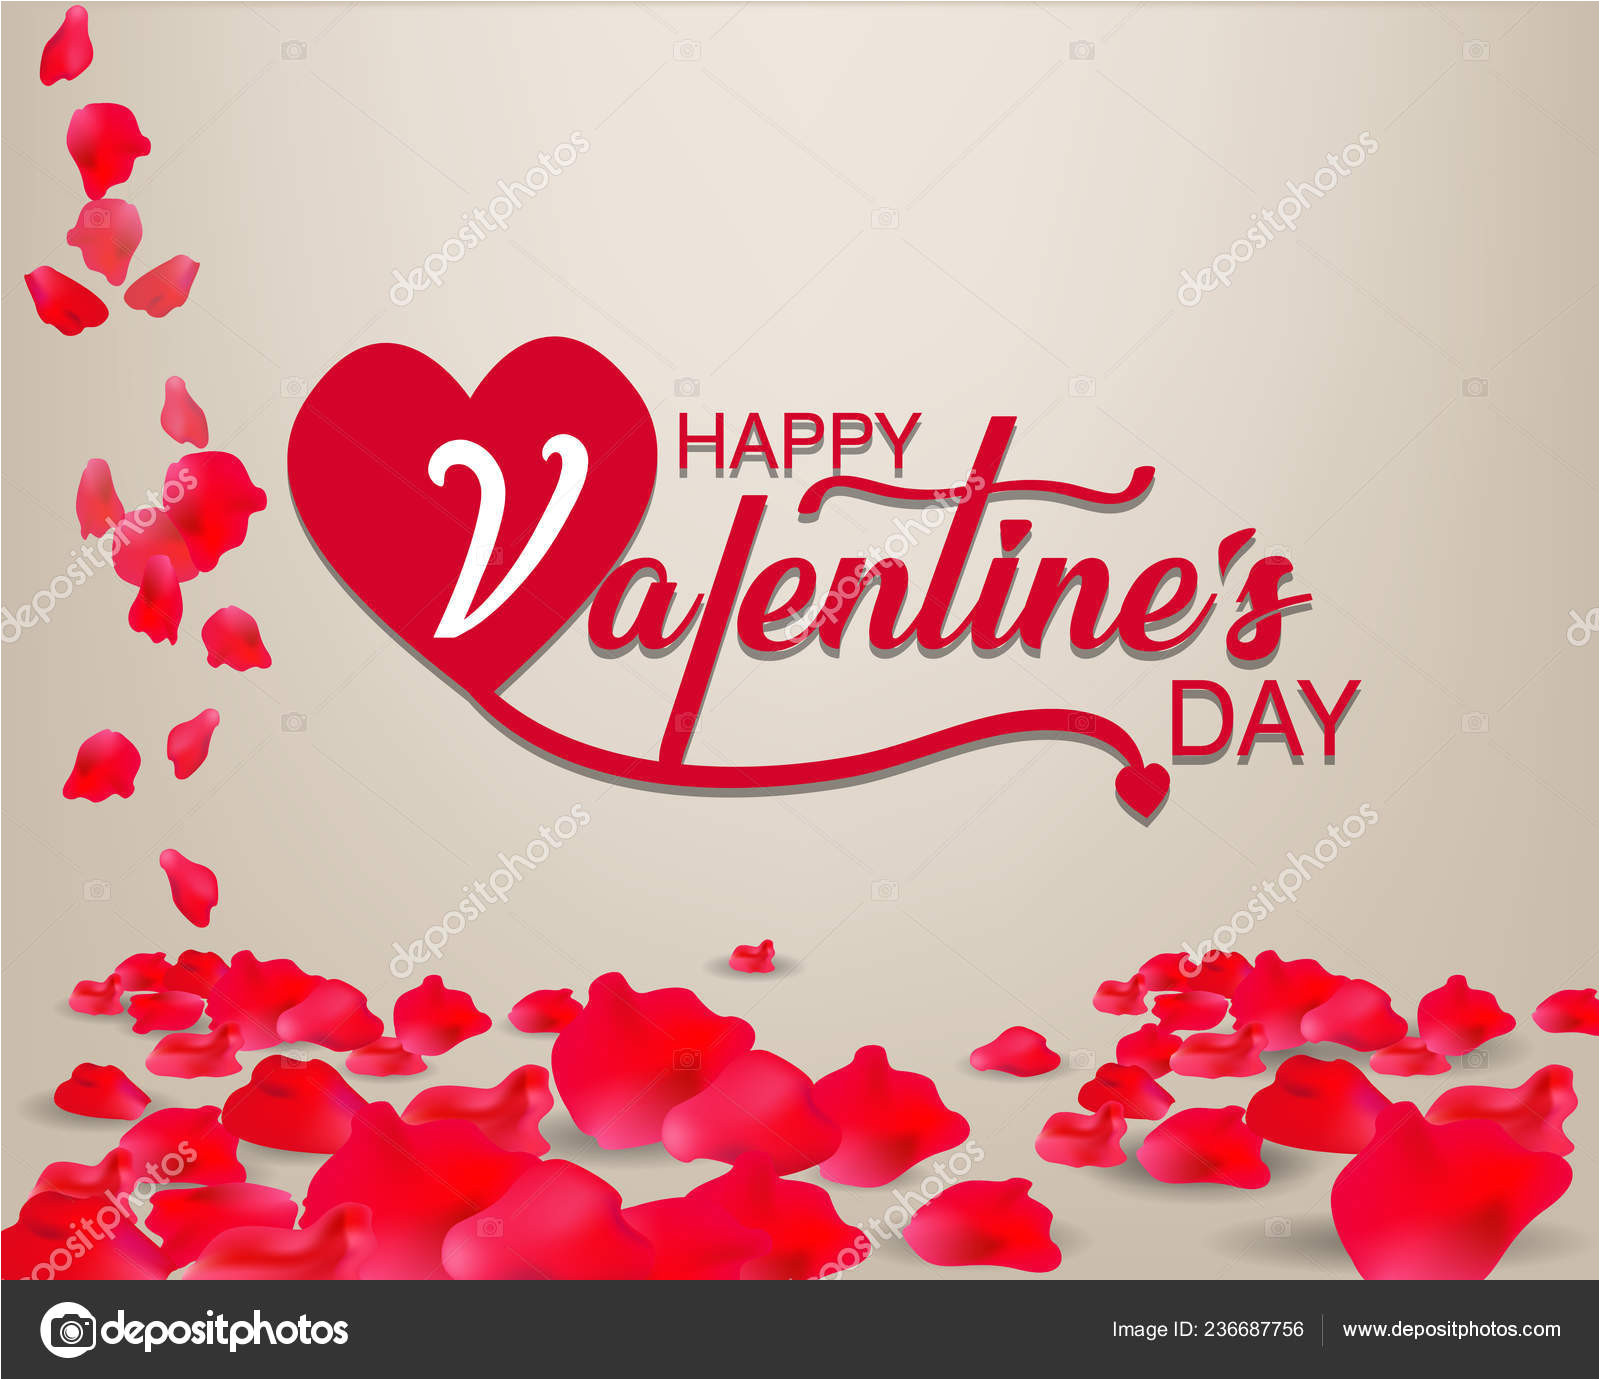 depositphotos 236687756 stock illustration hand sketched happy valentine day jpg